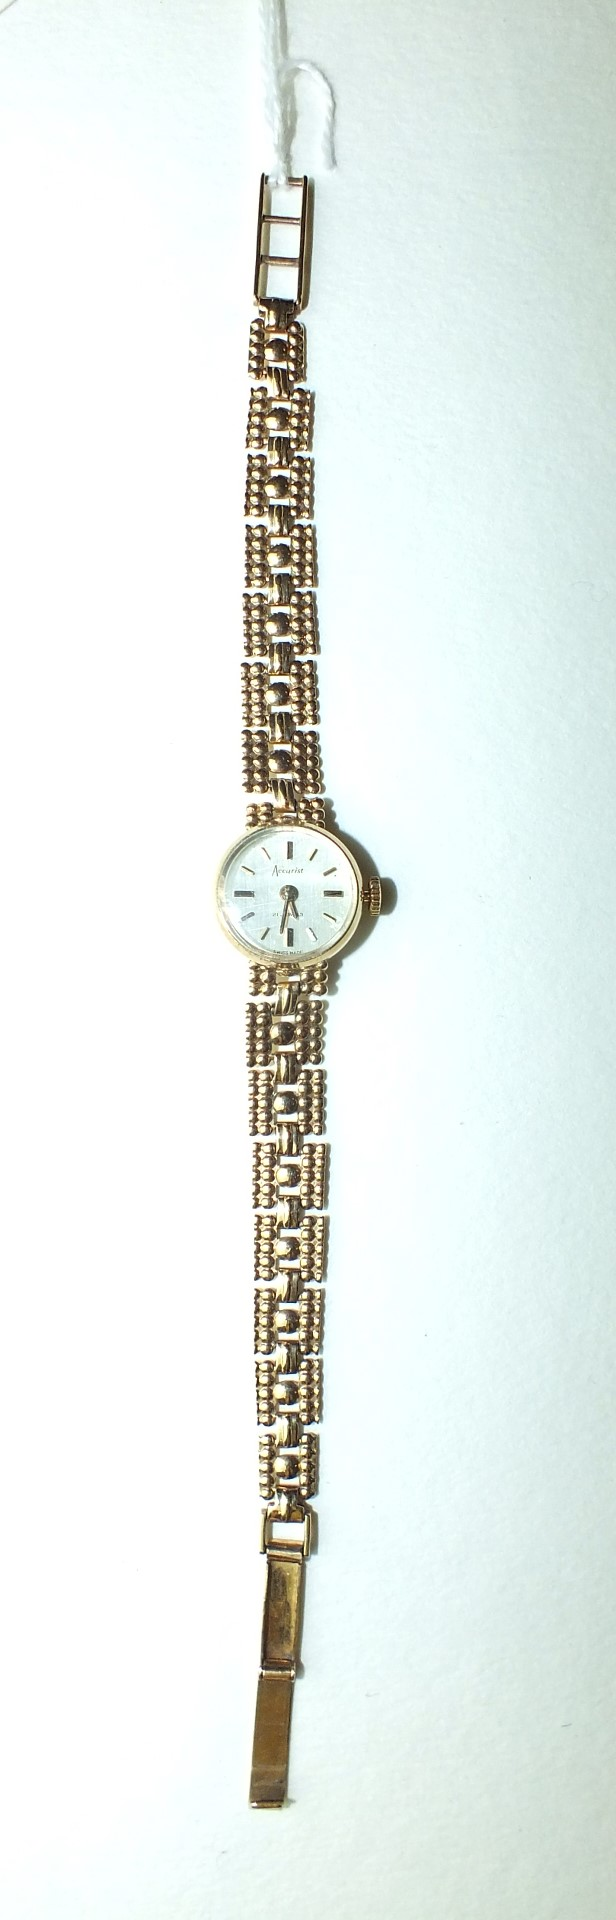 Lot 270 - Accurist, a ladies 9ct-gold-cased wrist watch, the circular dial with baton numerals, on gold